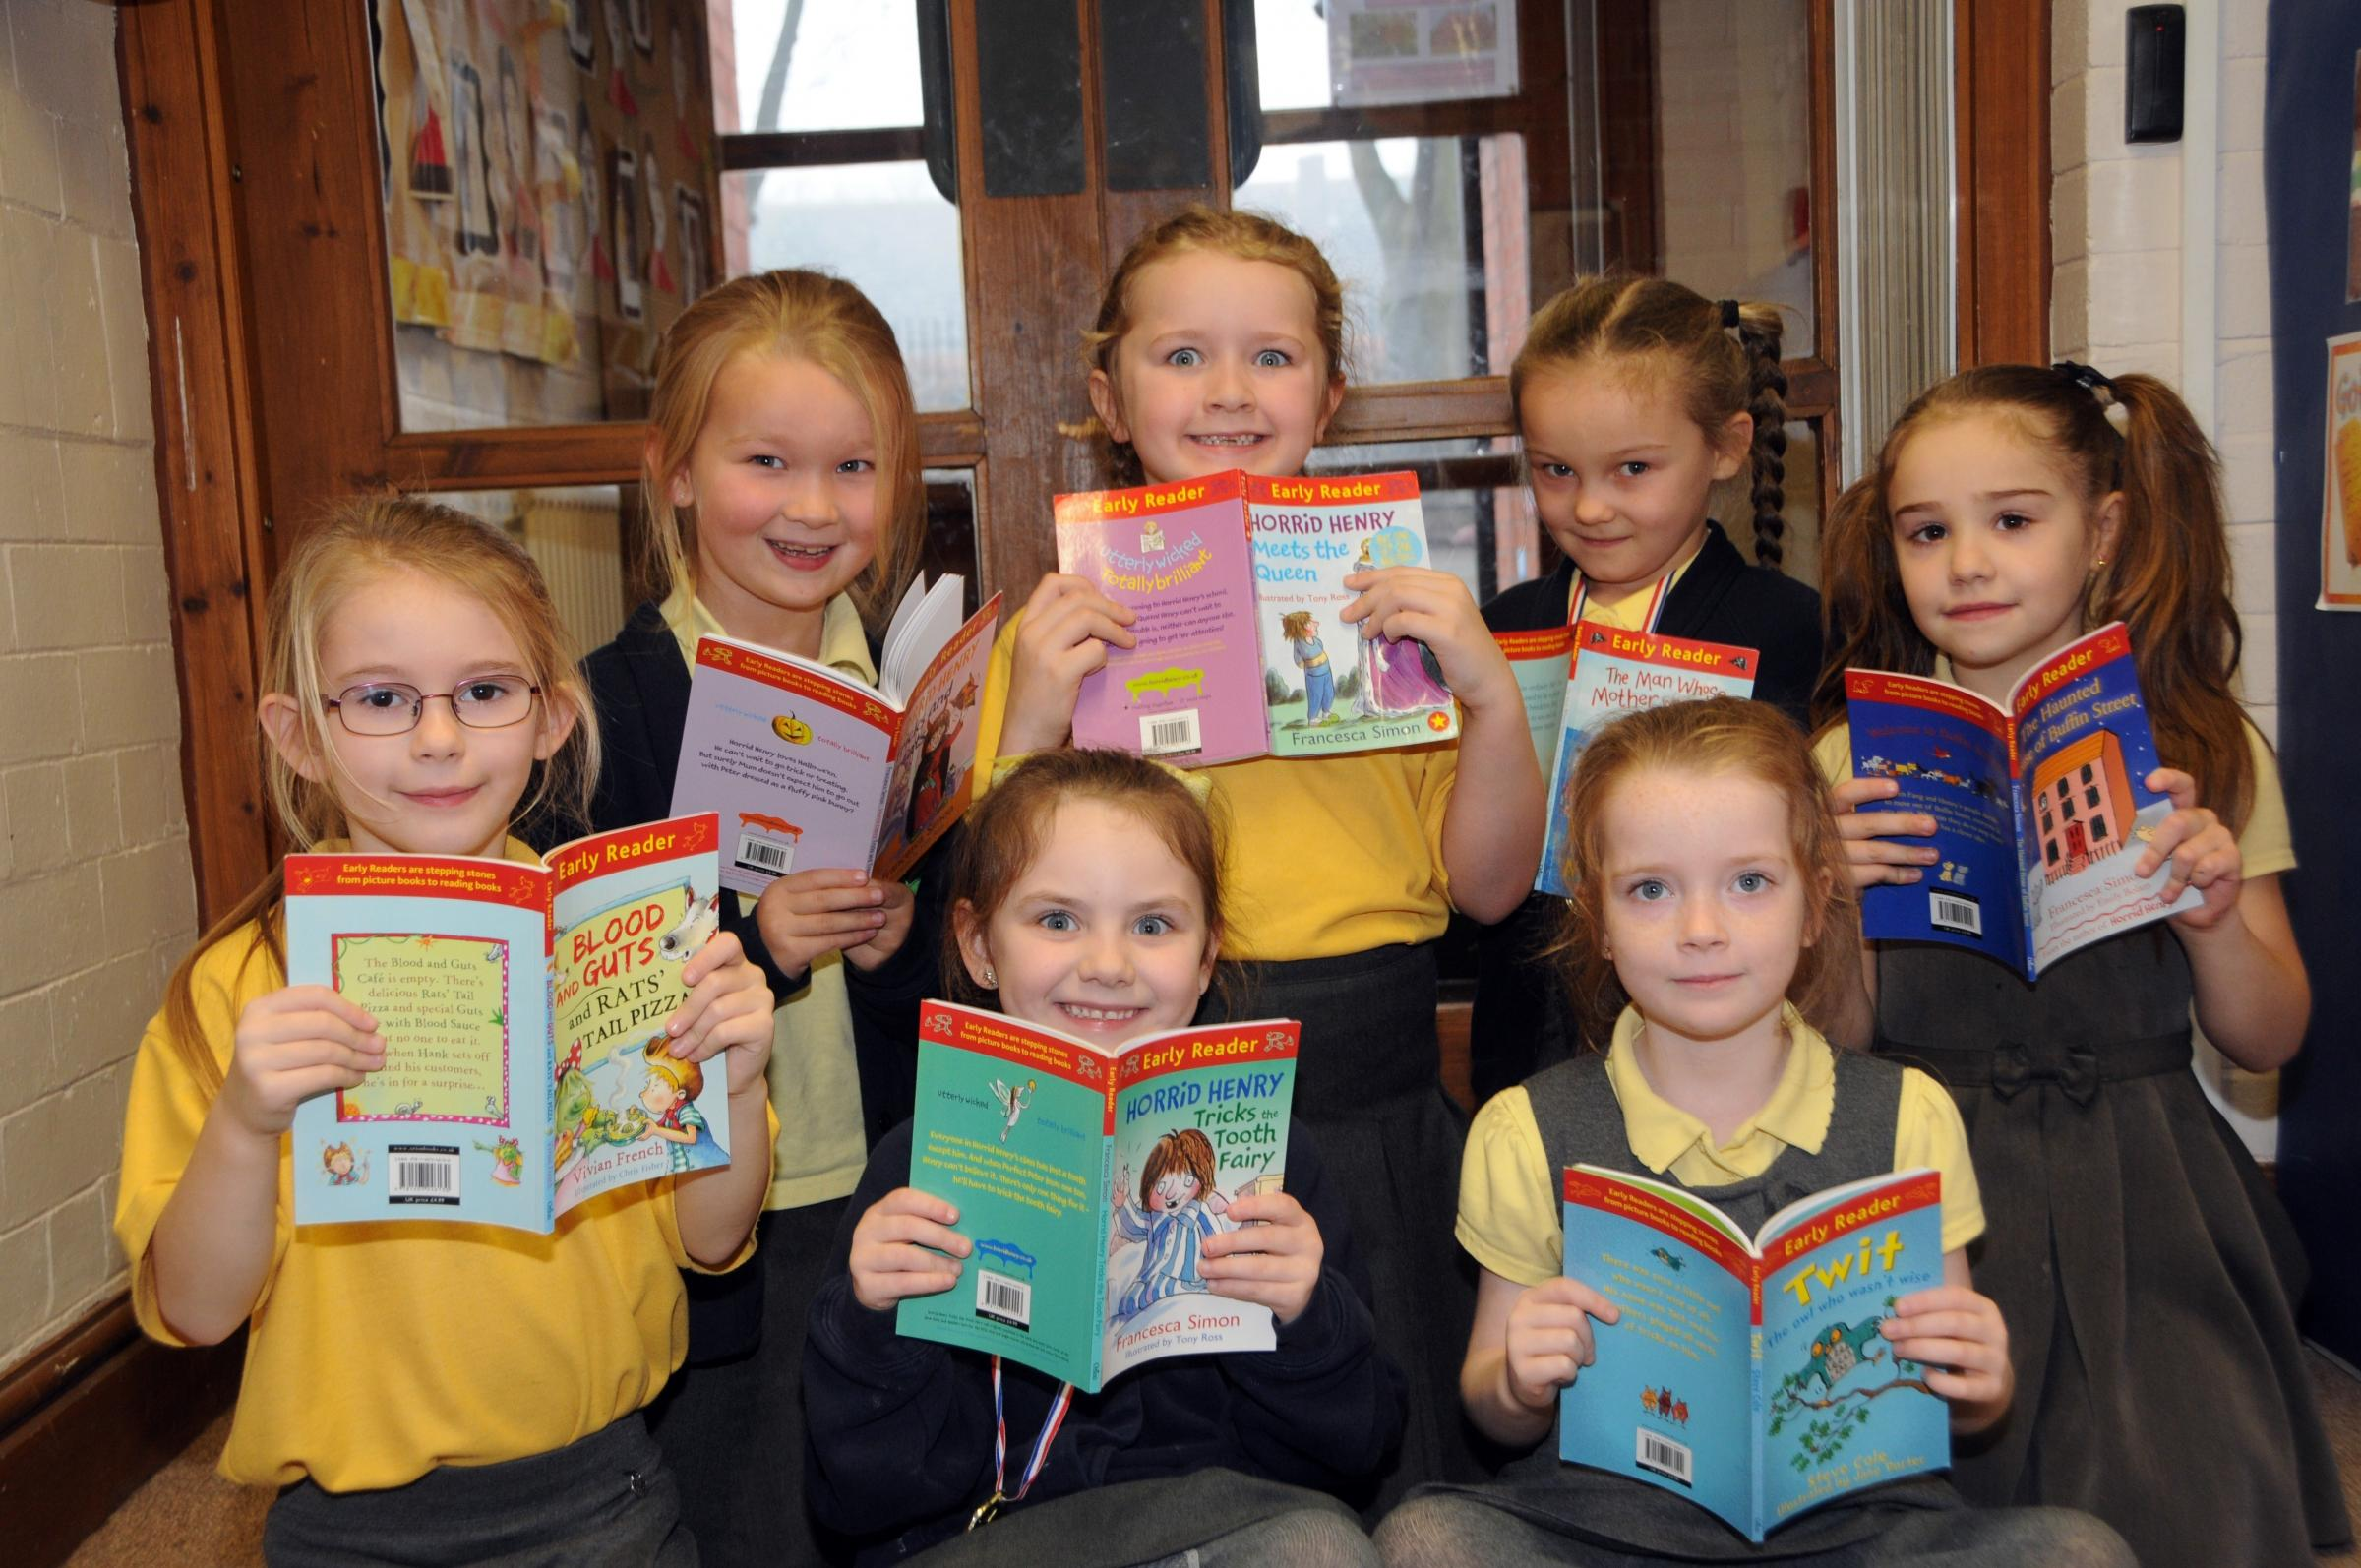 Seven pupils at Darnhall Primary School were presented with new books after passing their reading targets with flying colours